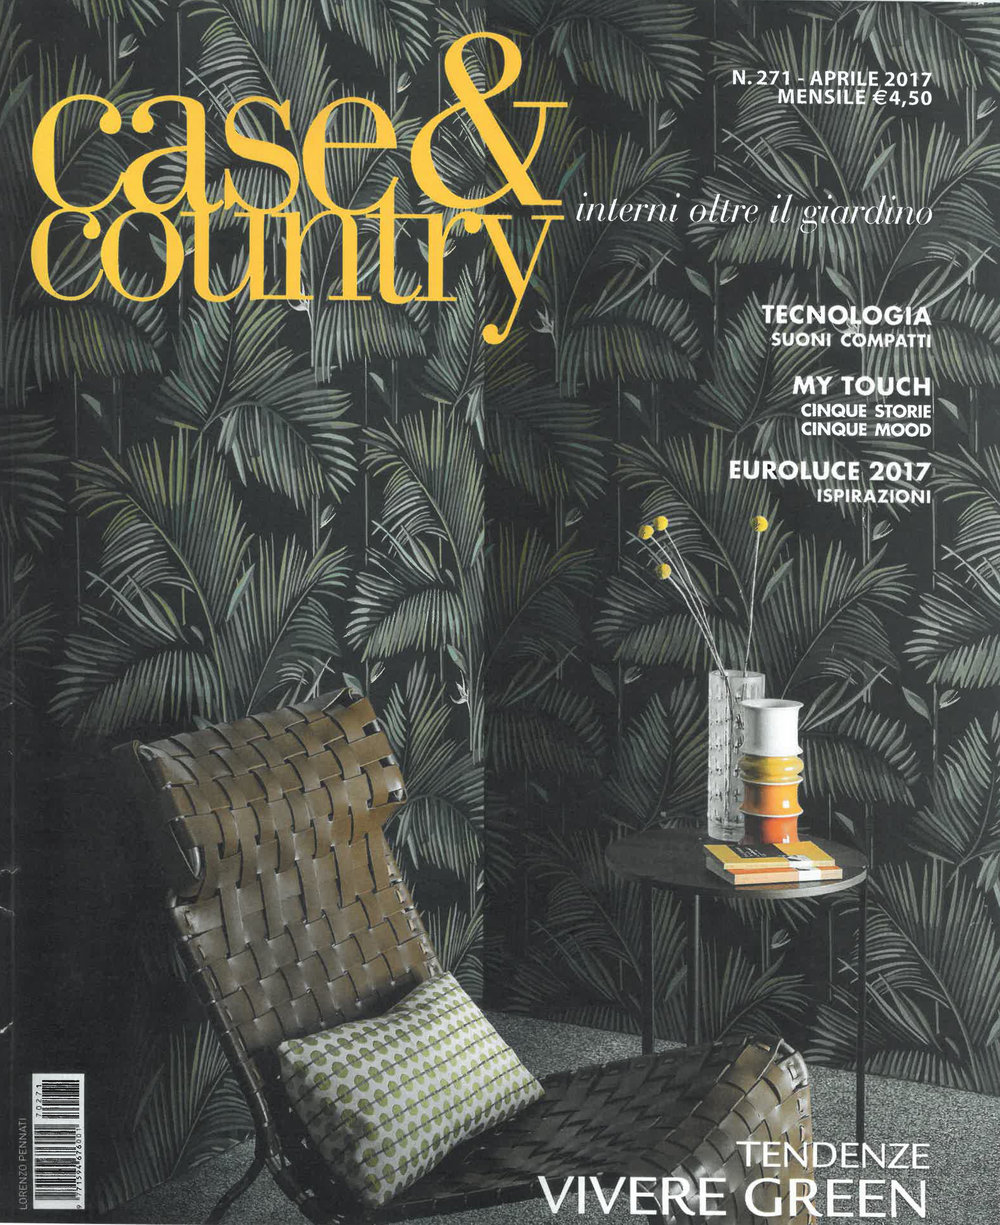 case&country-1.jpg